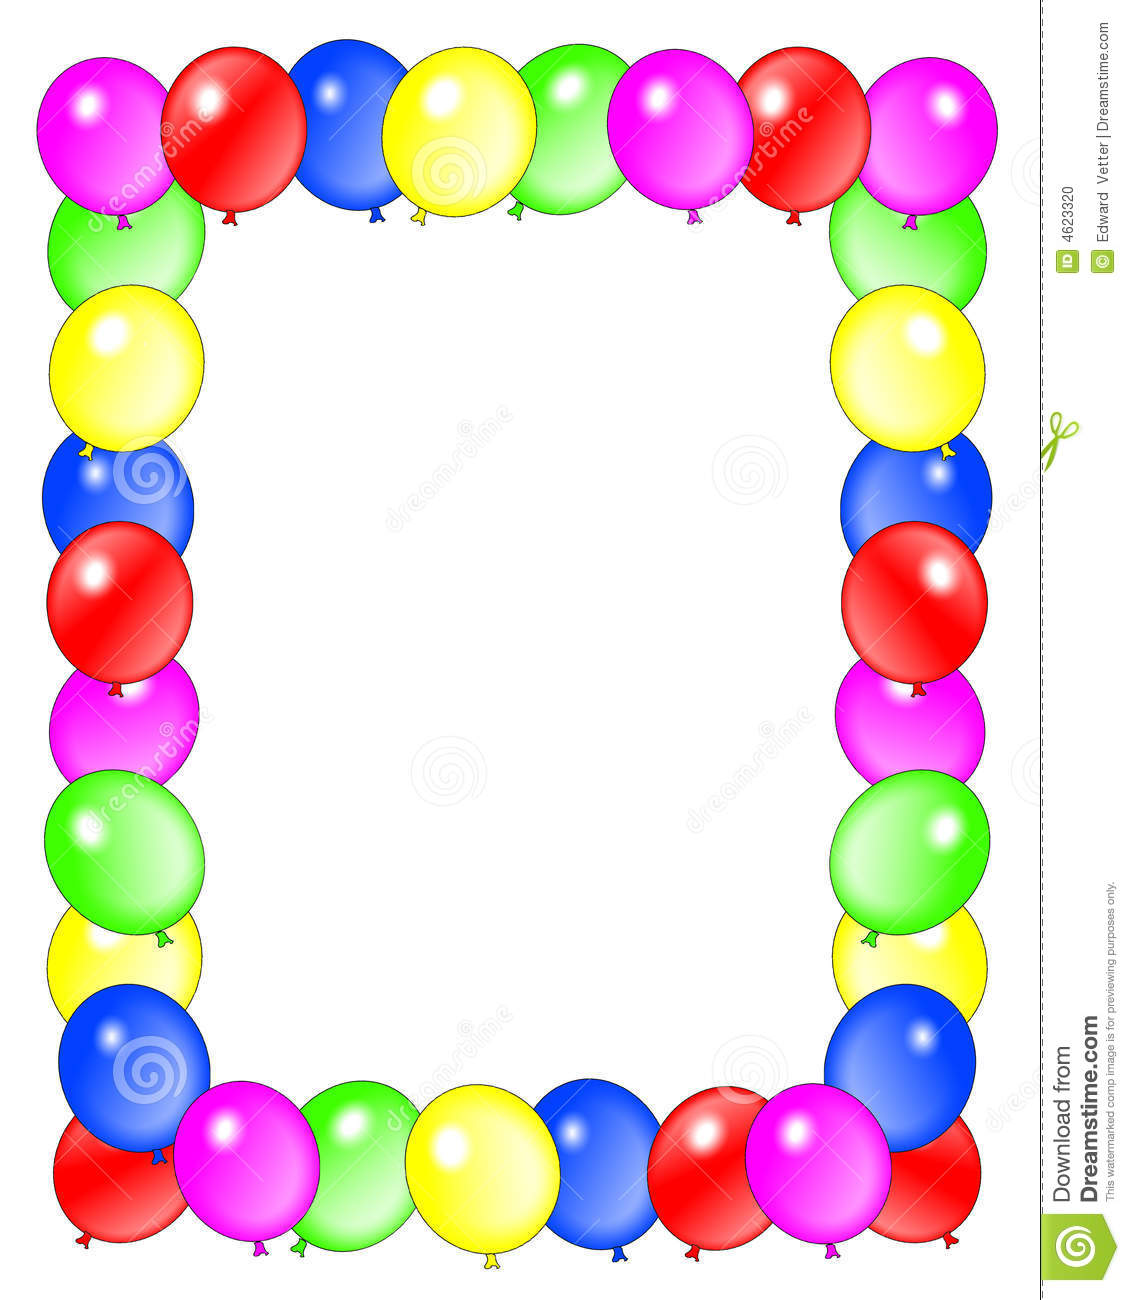 Free 50th birthday clipart borders